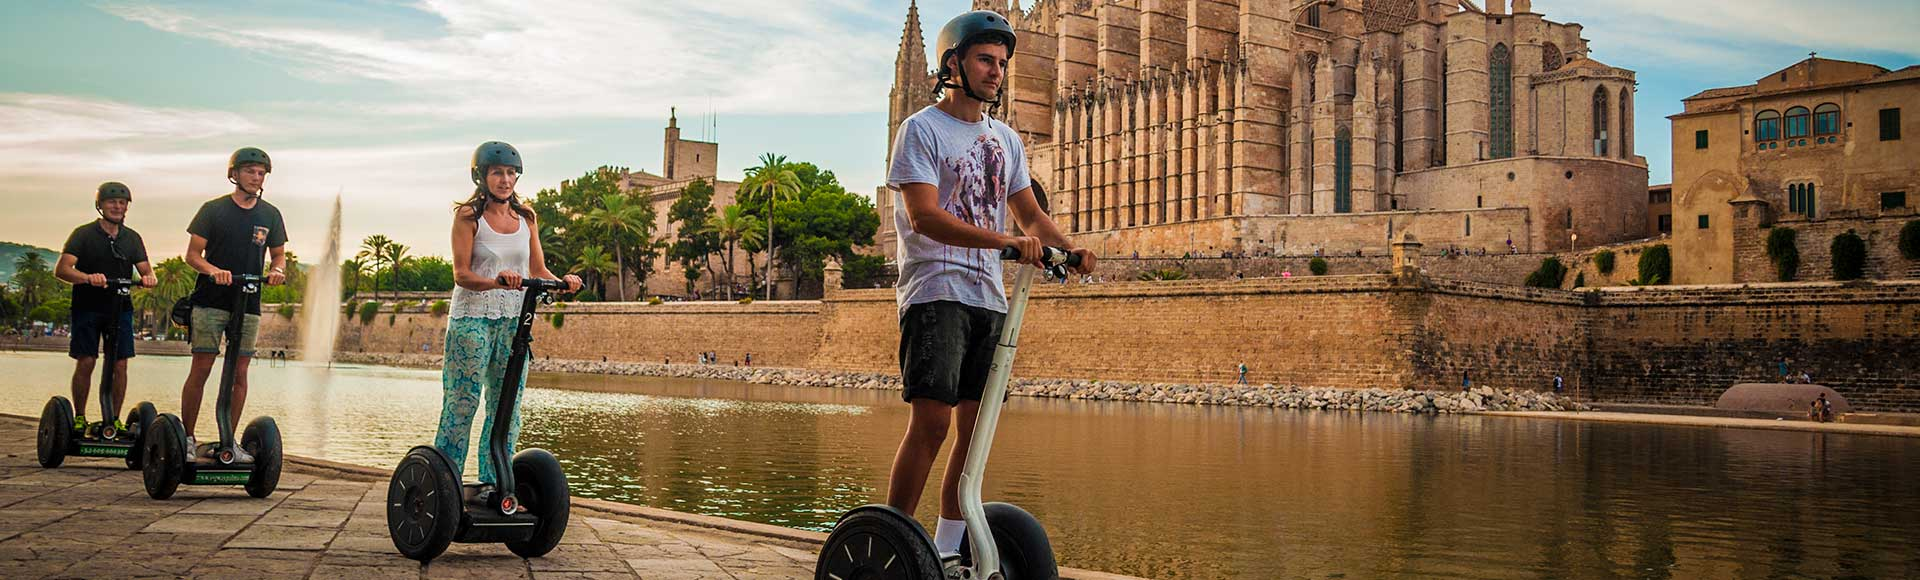 Segway Tours in Palma city